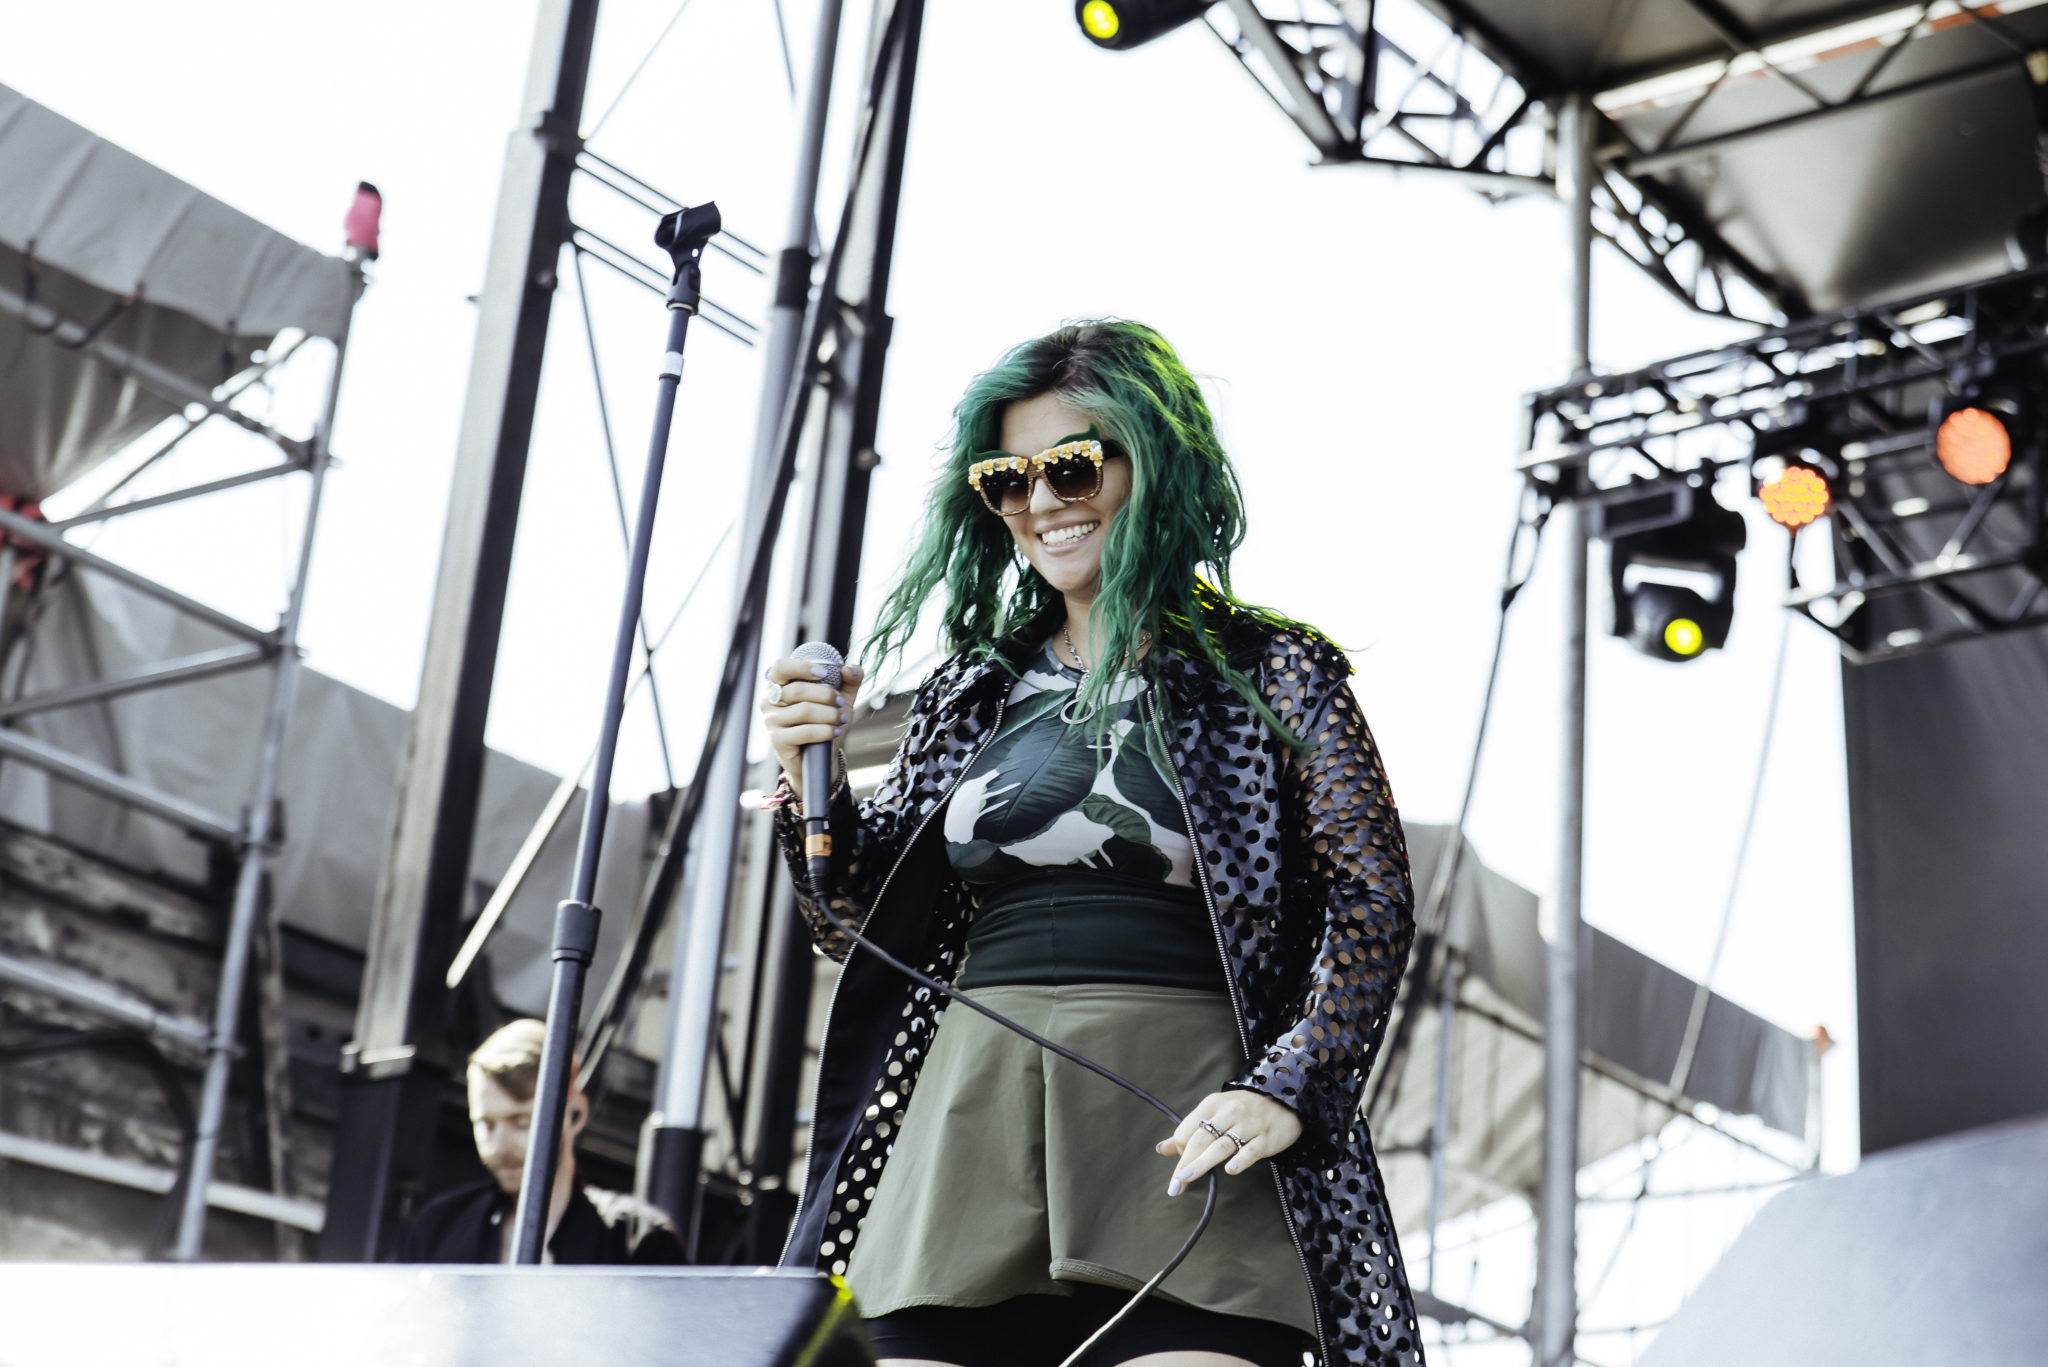 PHOTOS: Phoebe Ryan gets things started at Billboard Hot 100 Festival